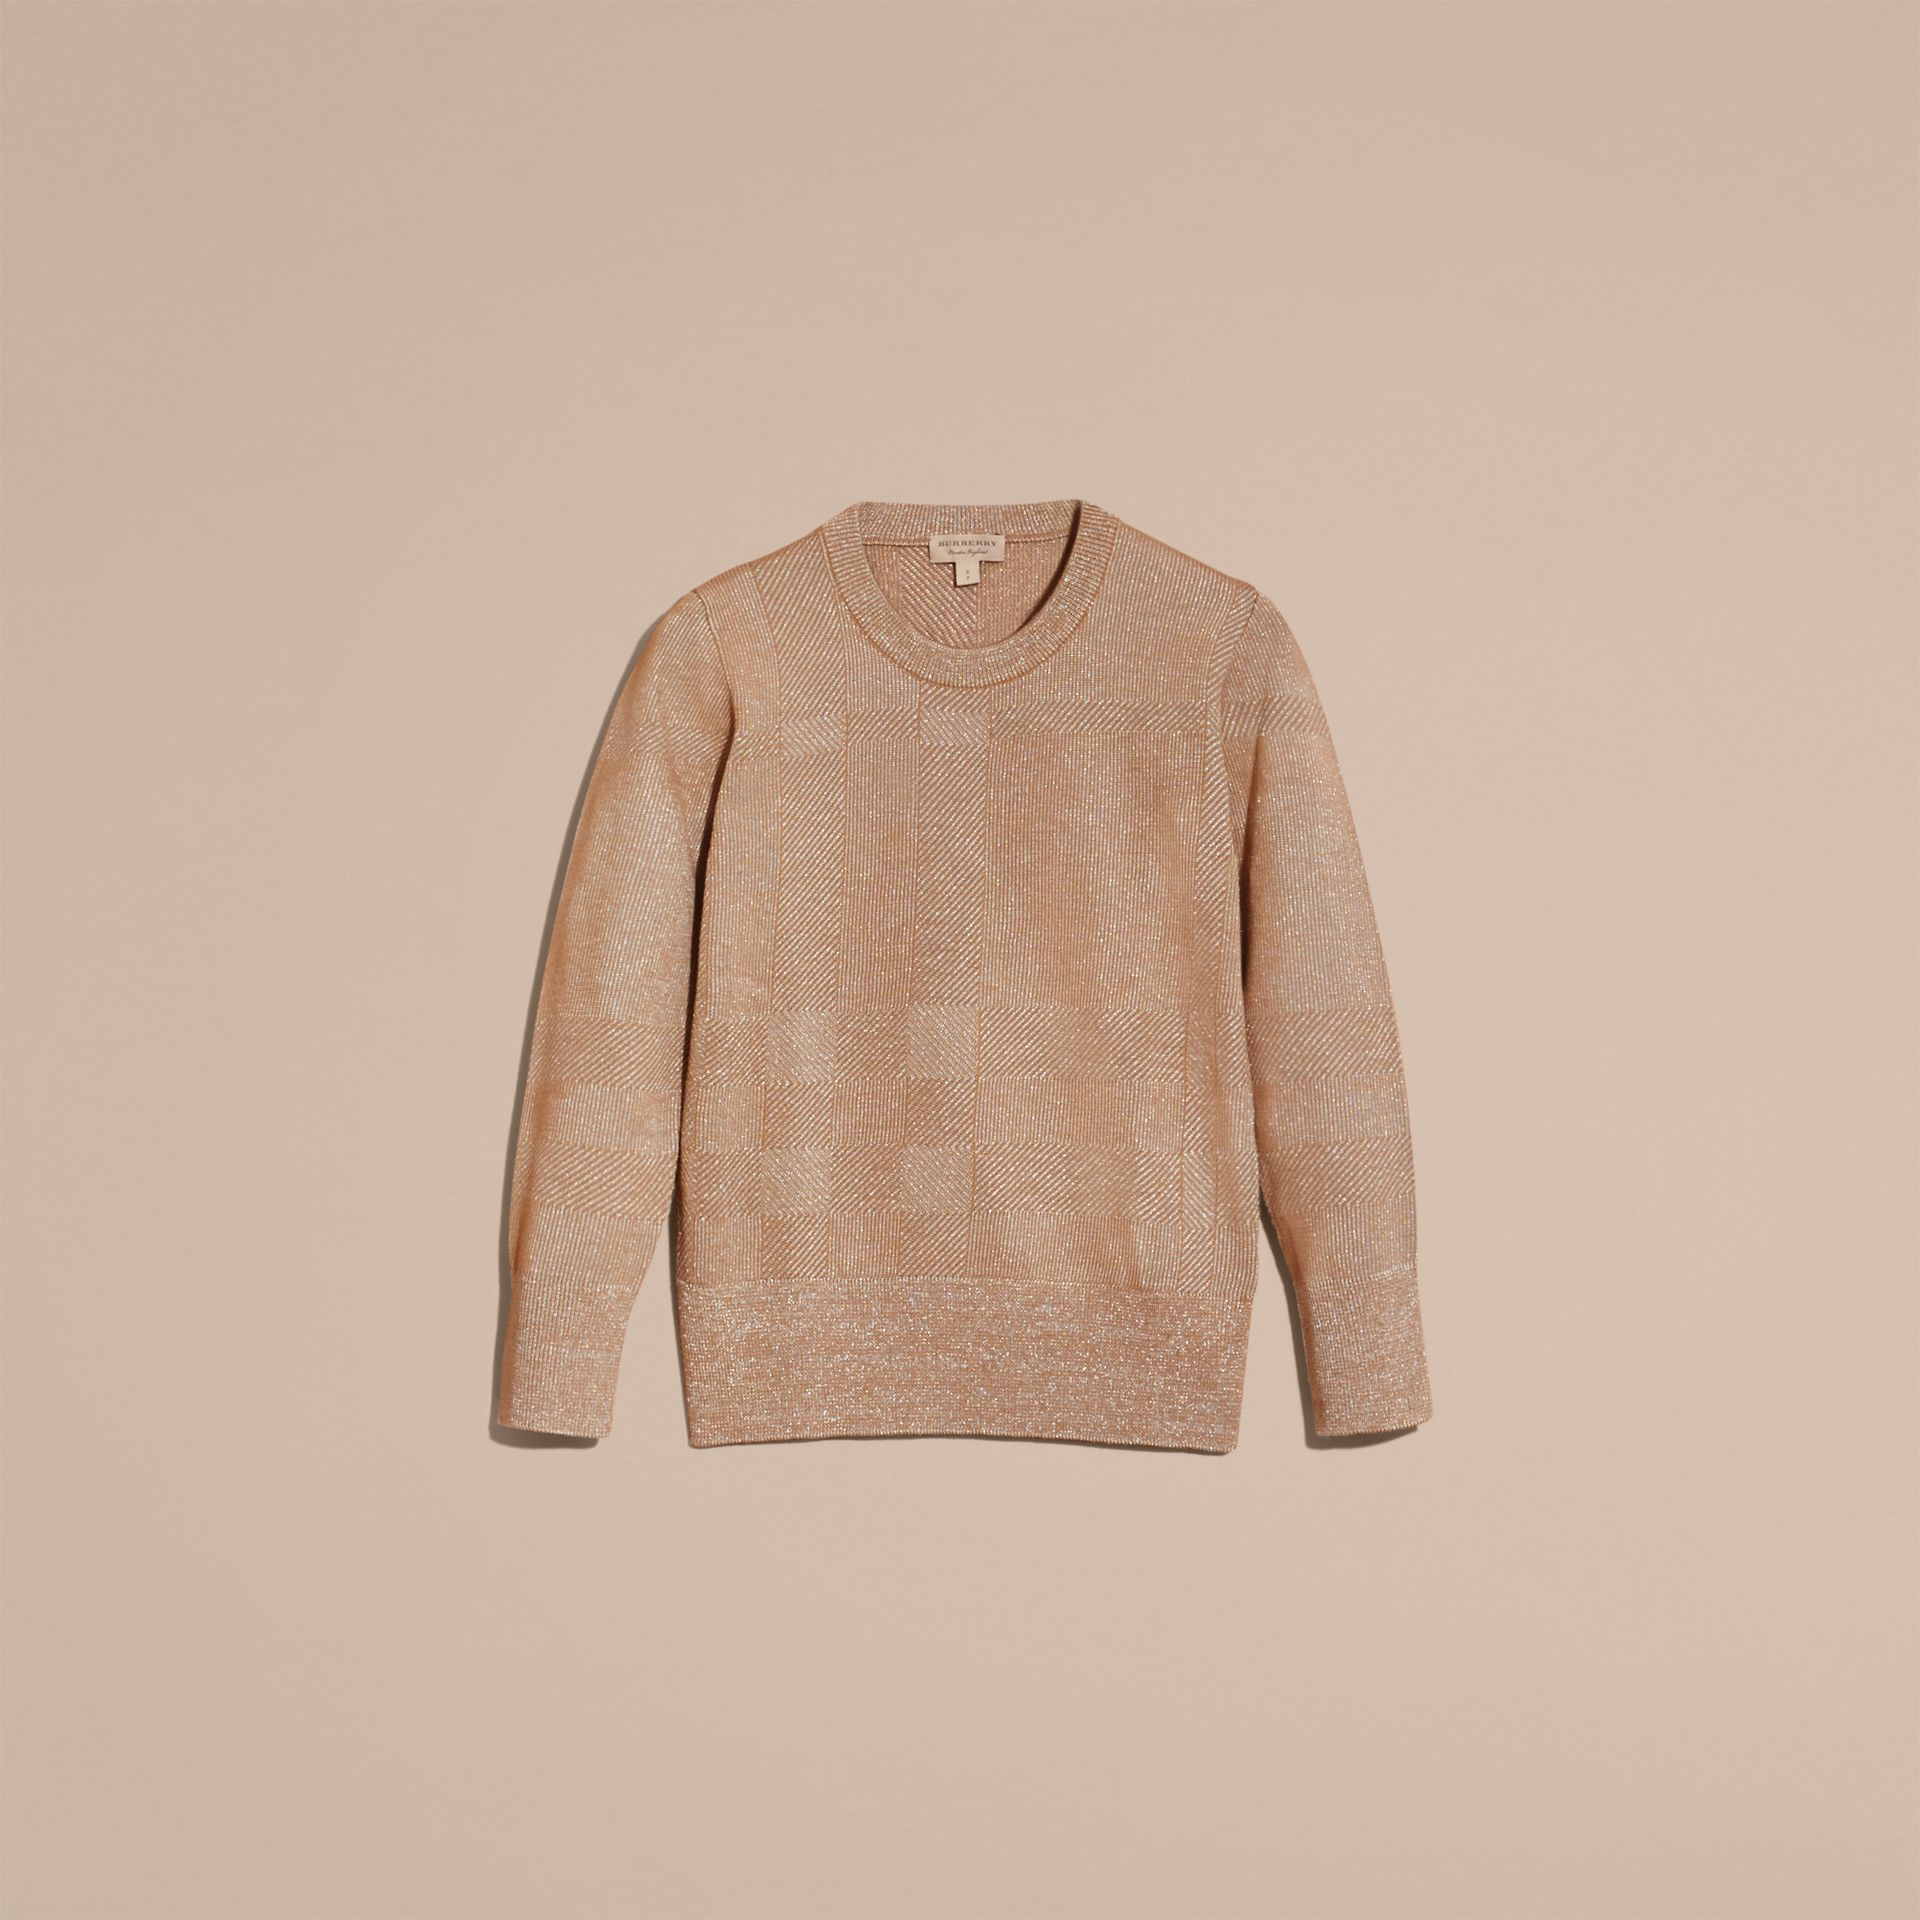 Camel Check Merino Wool and Metallic Sweater - gallery image 4